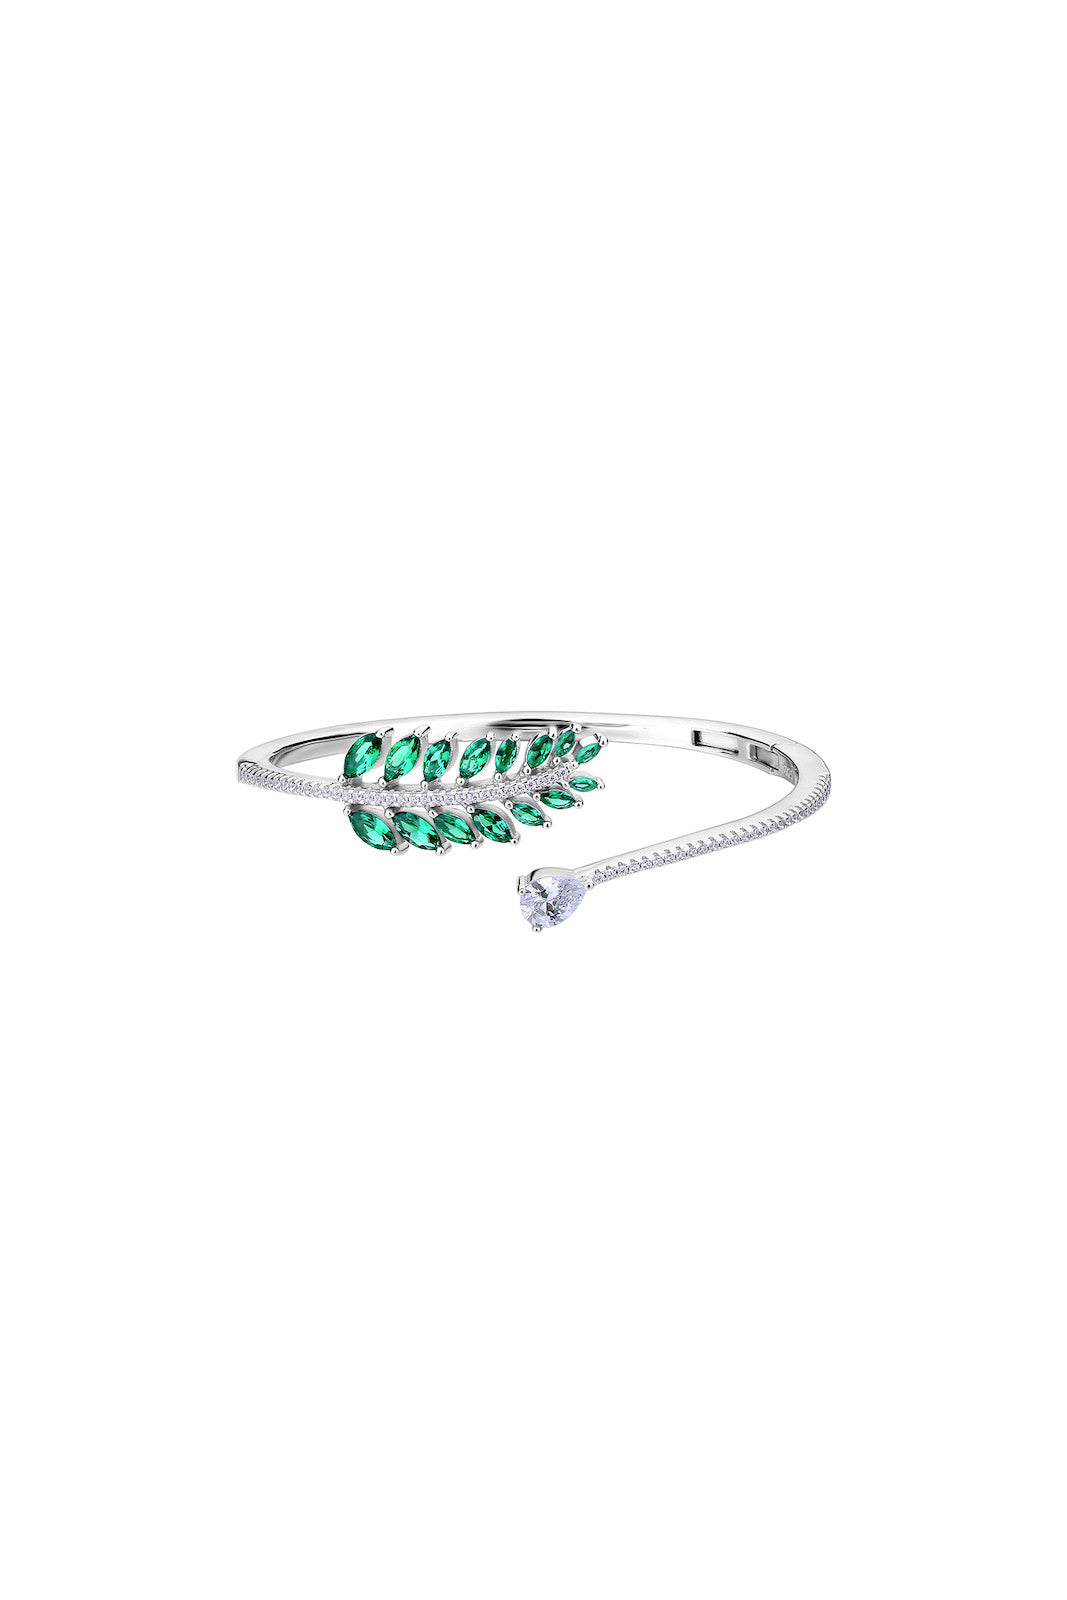 Falling Leaves Emerald Green Silver CZ Bangle